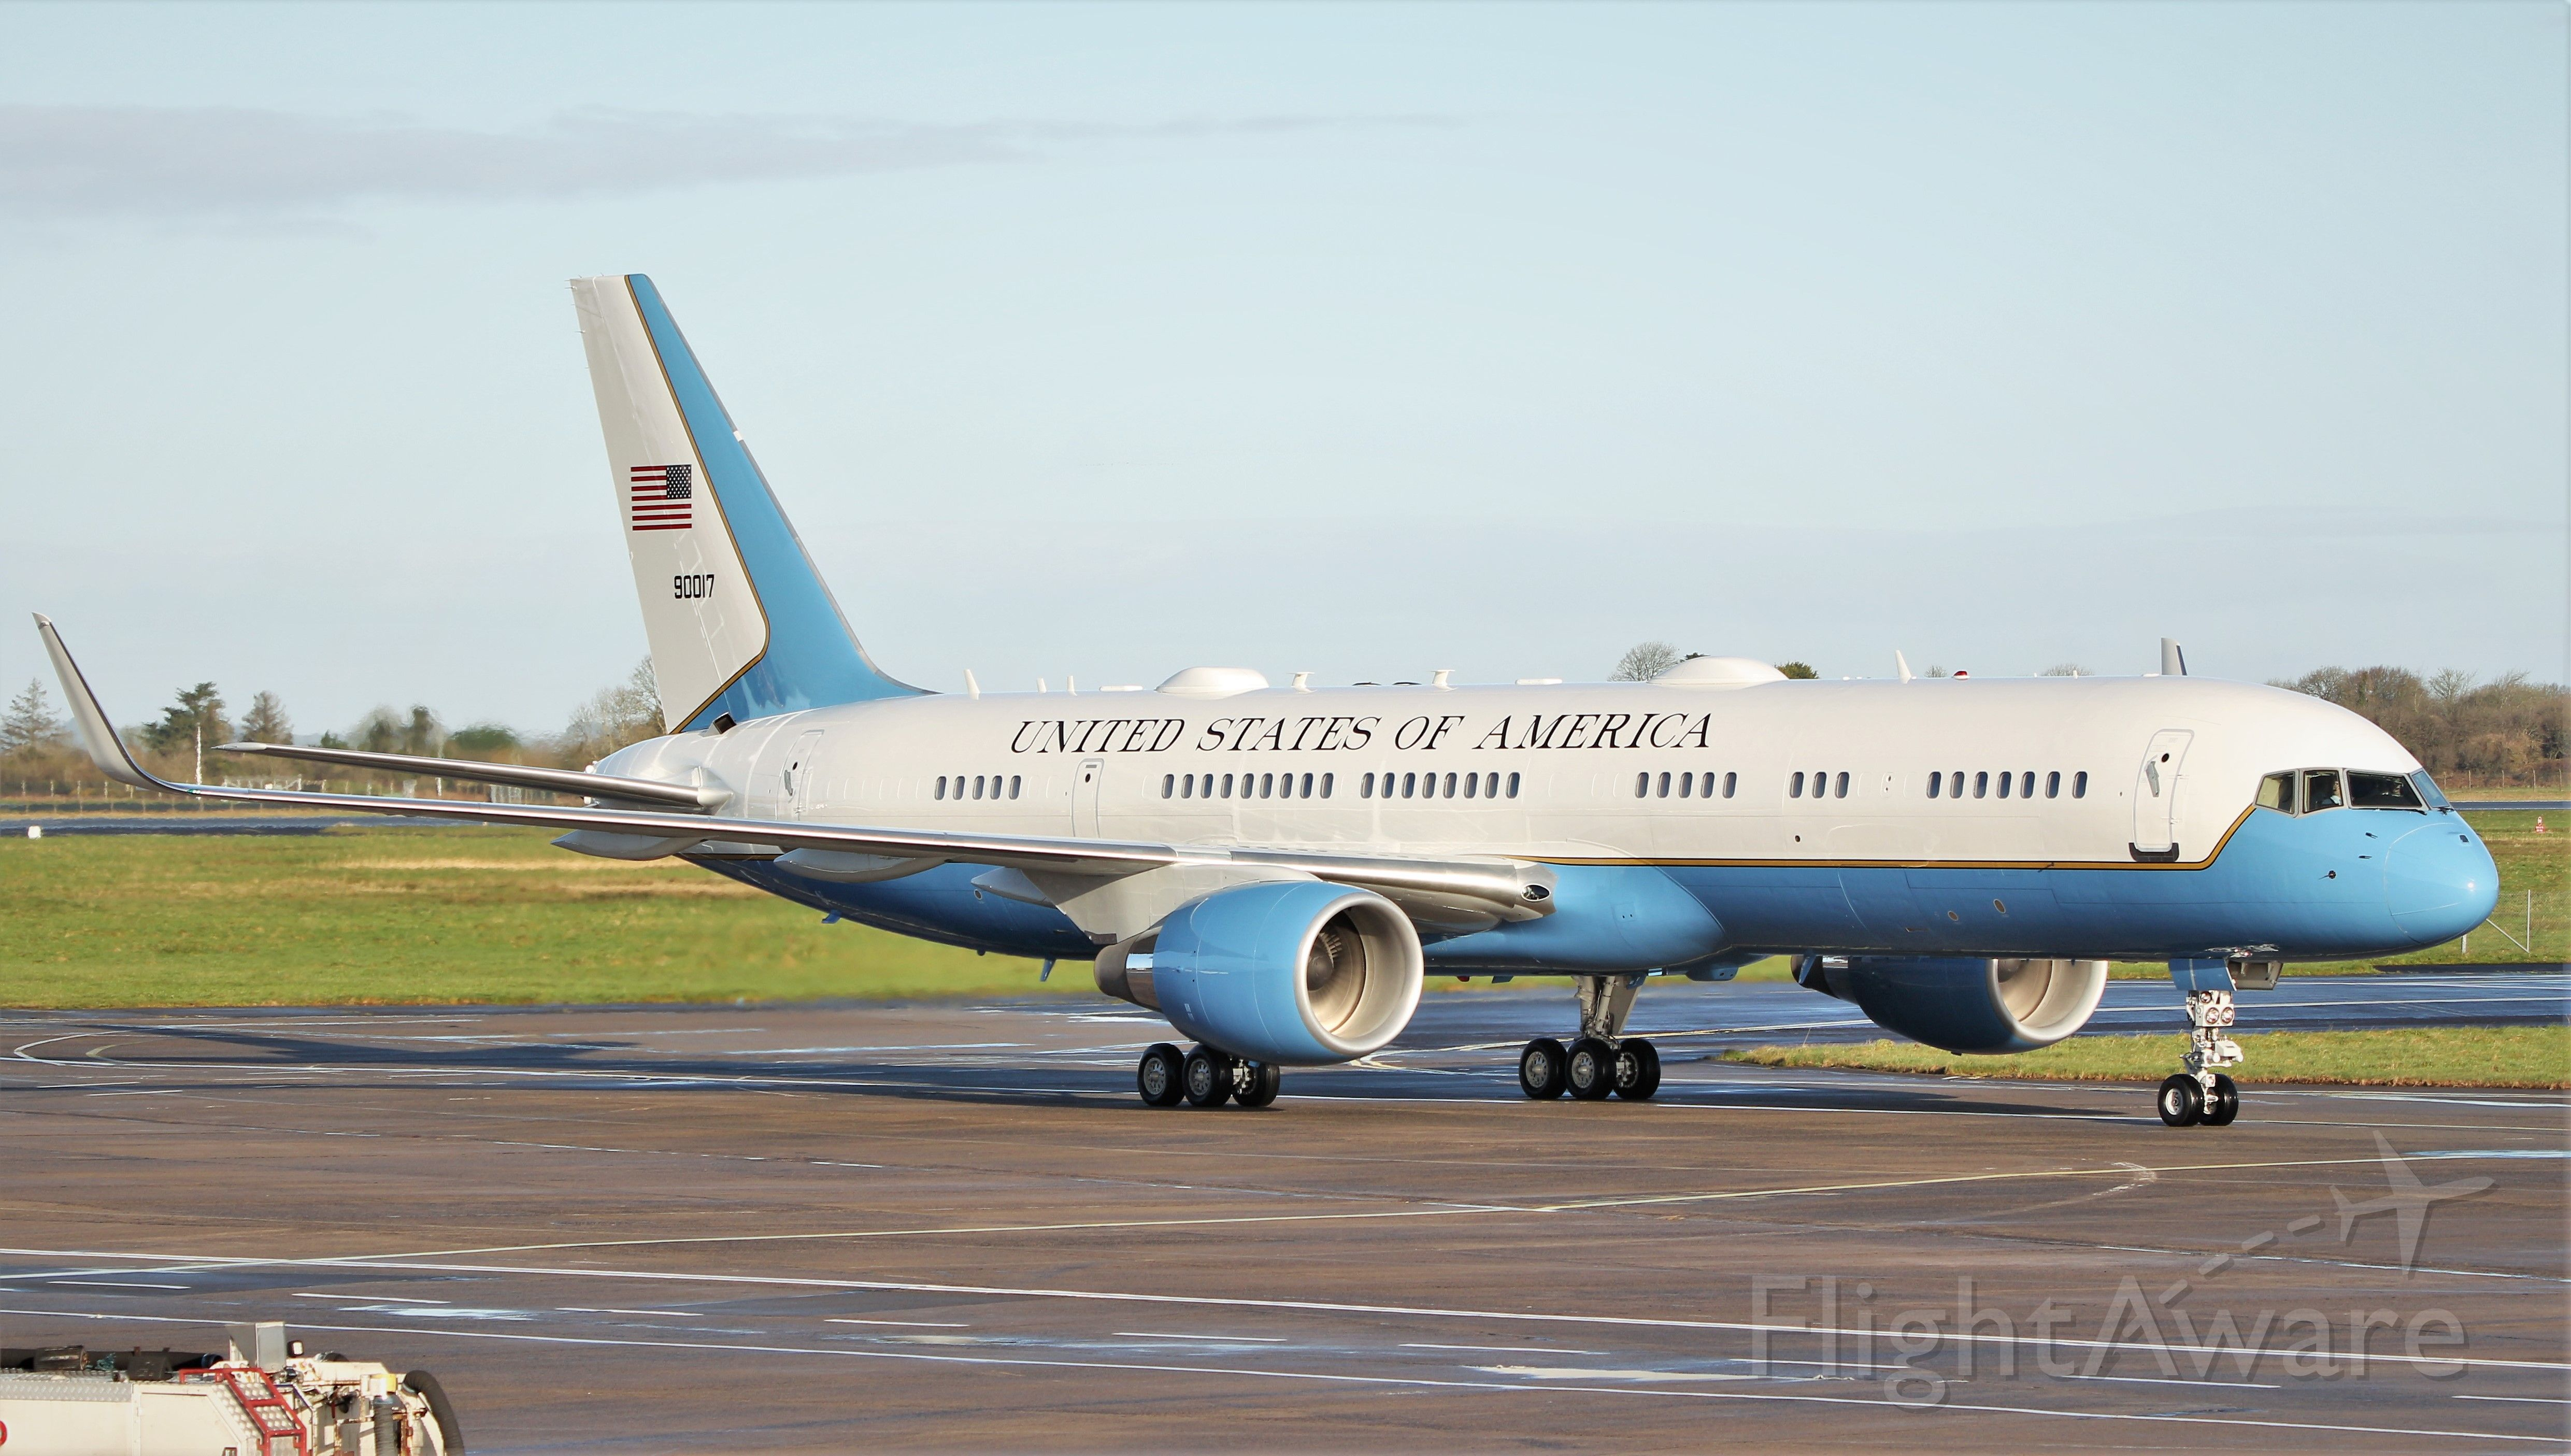 Boeing 757-200 (09-0017) - sam18 usaf c-32a 09-0017 arriving in shannon 27/2/20.